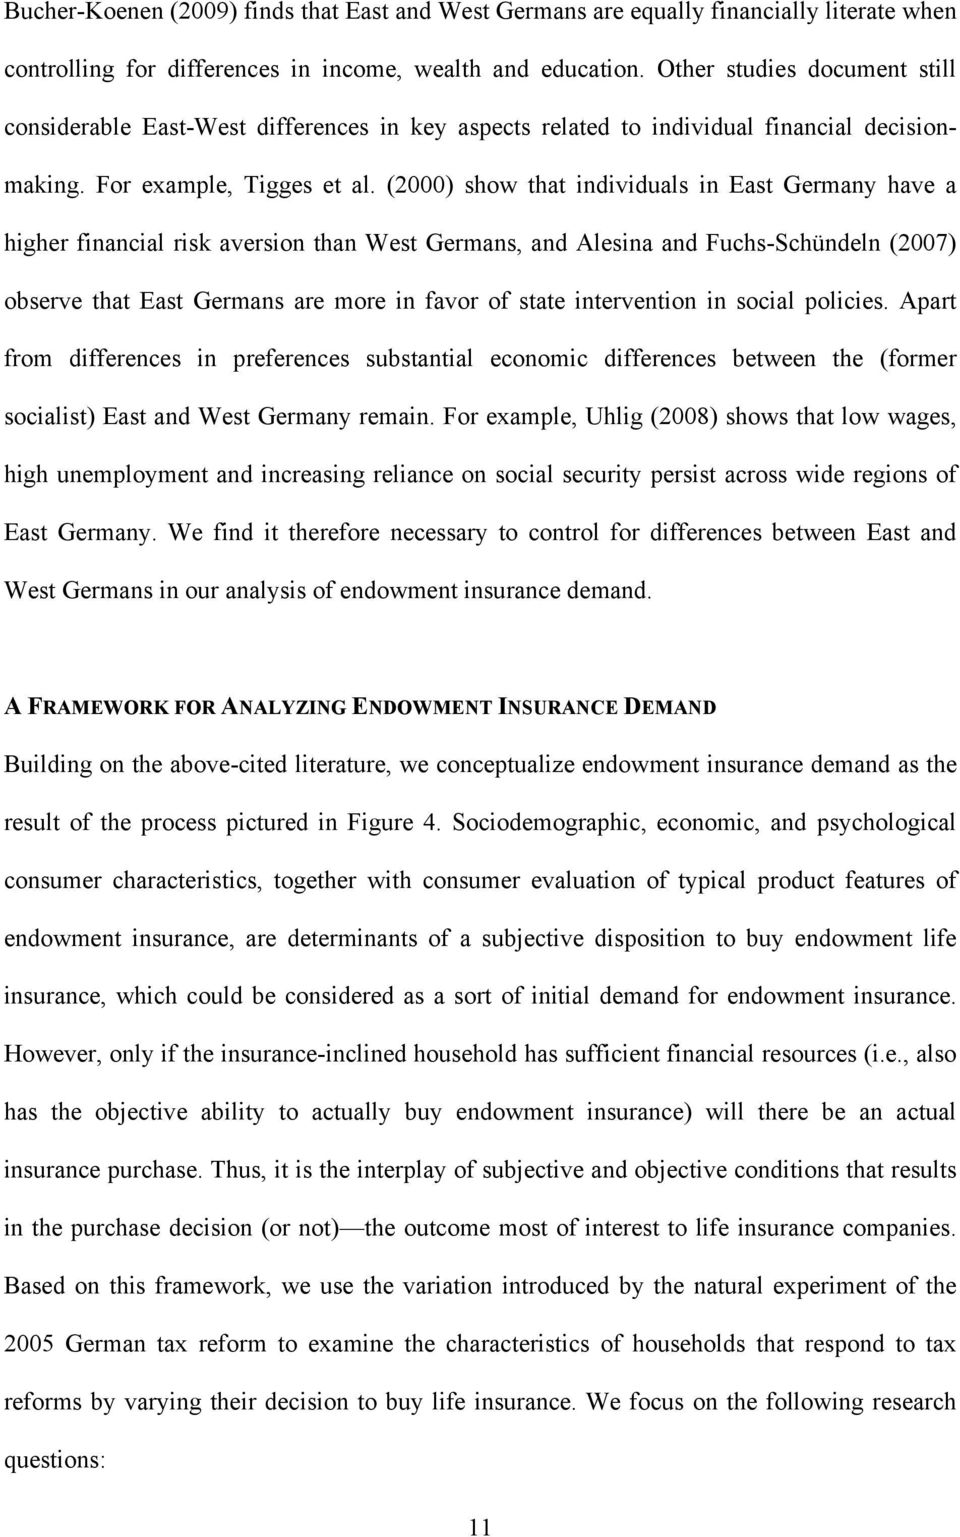 (2000) show that individuals in East Germany have a higher financial risk aversion than West Germans, and Alesina and Fuchs-Schündeln (2007) observe that East Germans are more in favor of state